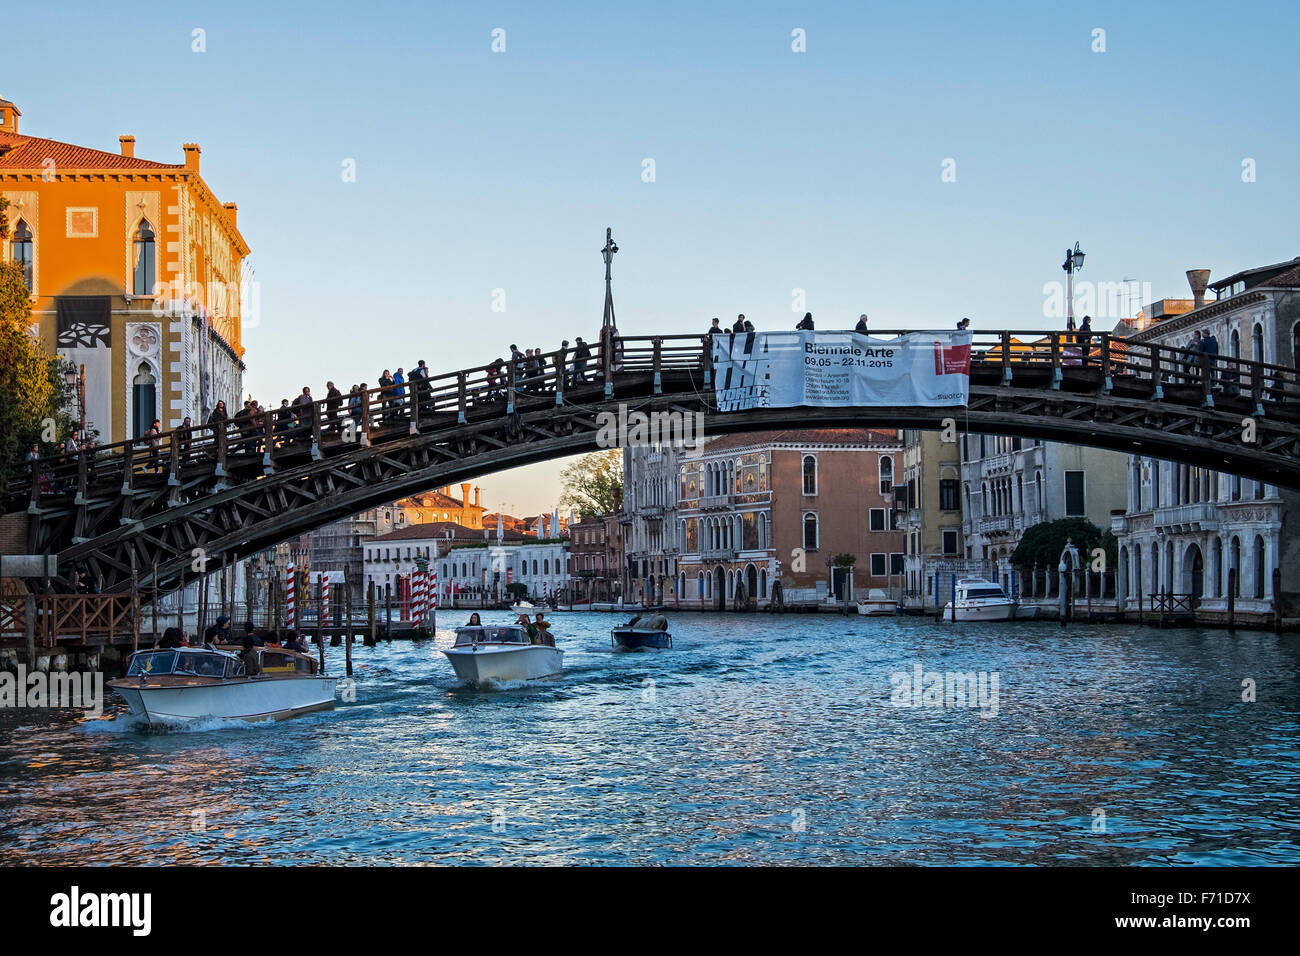 Italy, Venice, Grande Canale, Ponte Academia bridge, motor boats and grand riverside houses - Stock Image